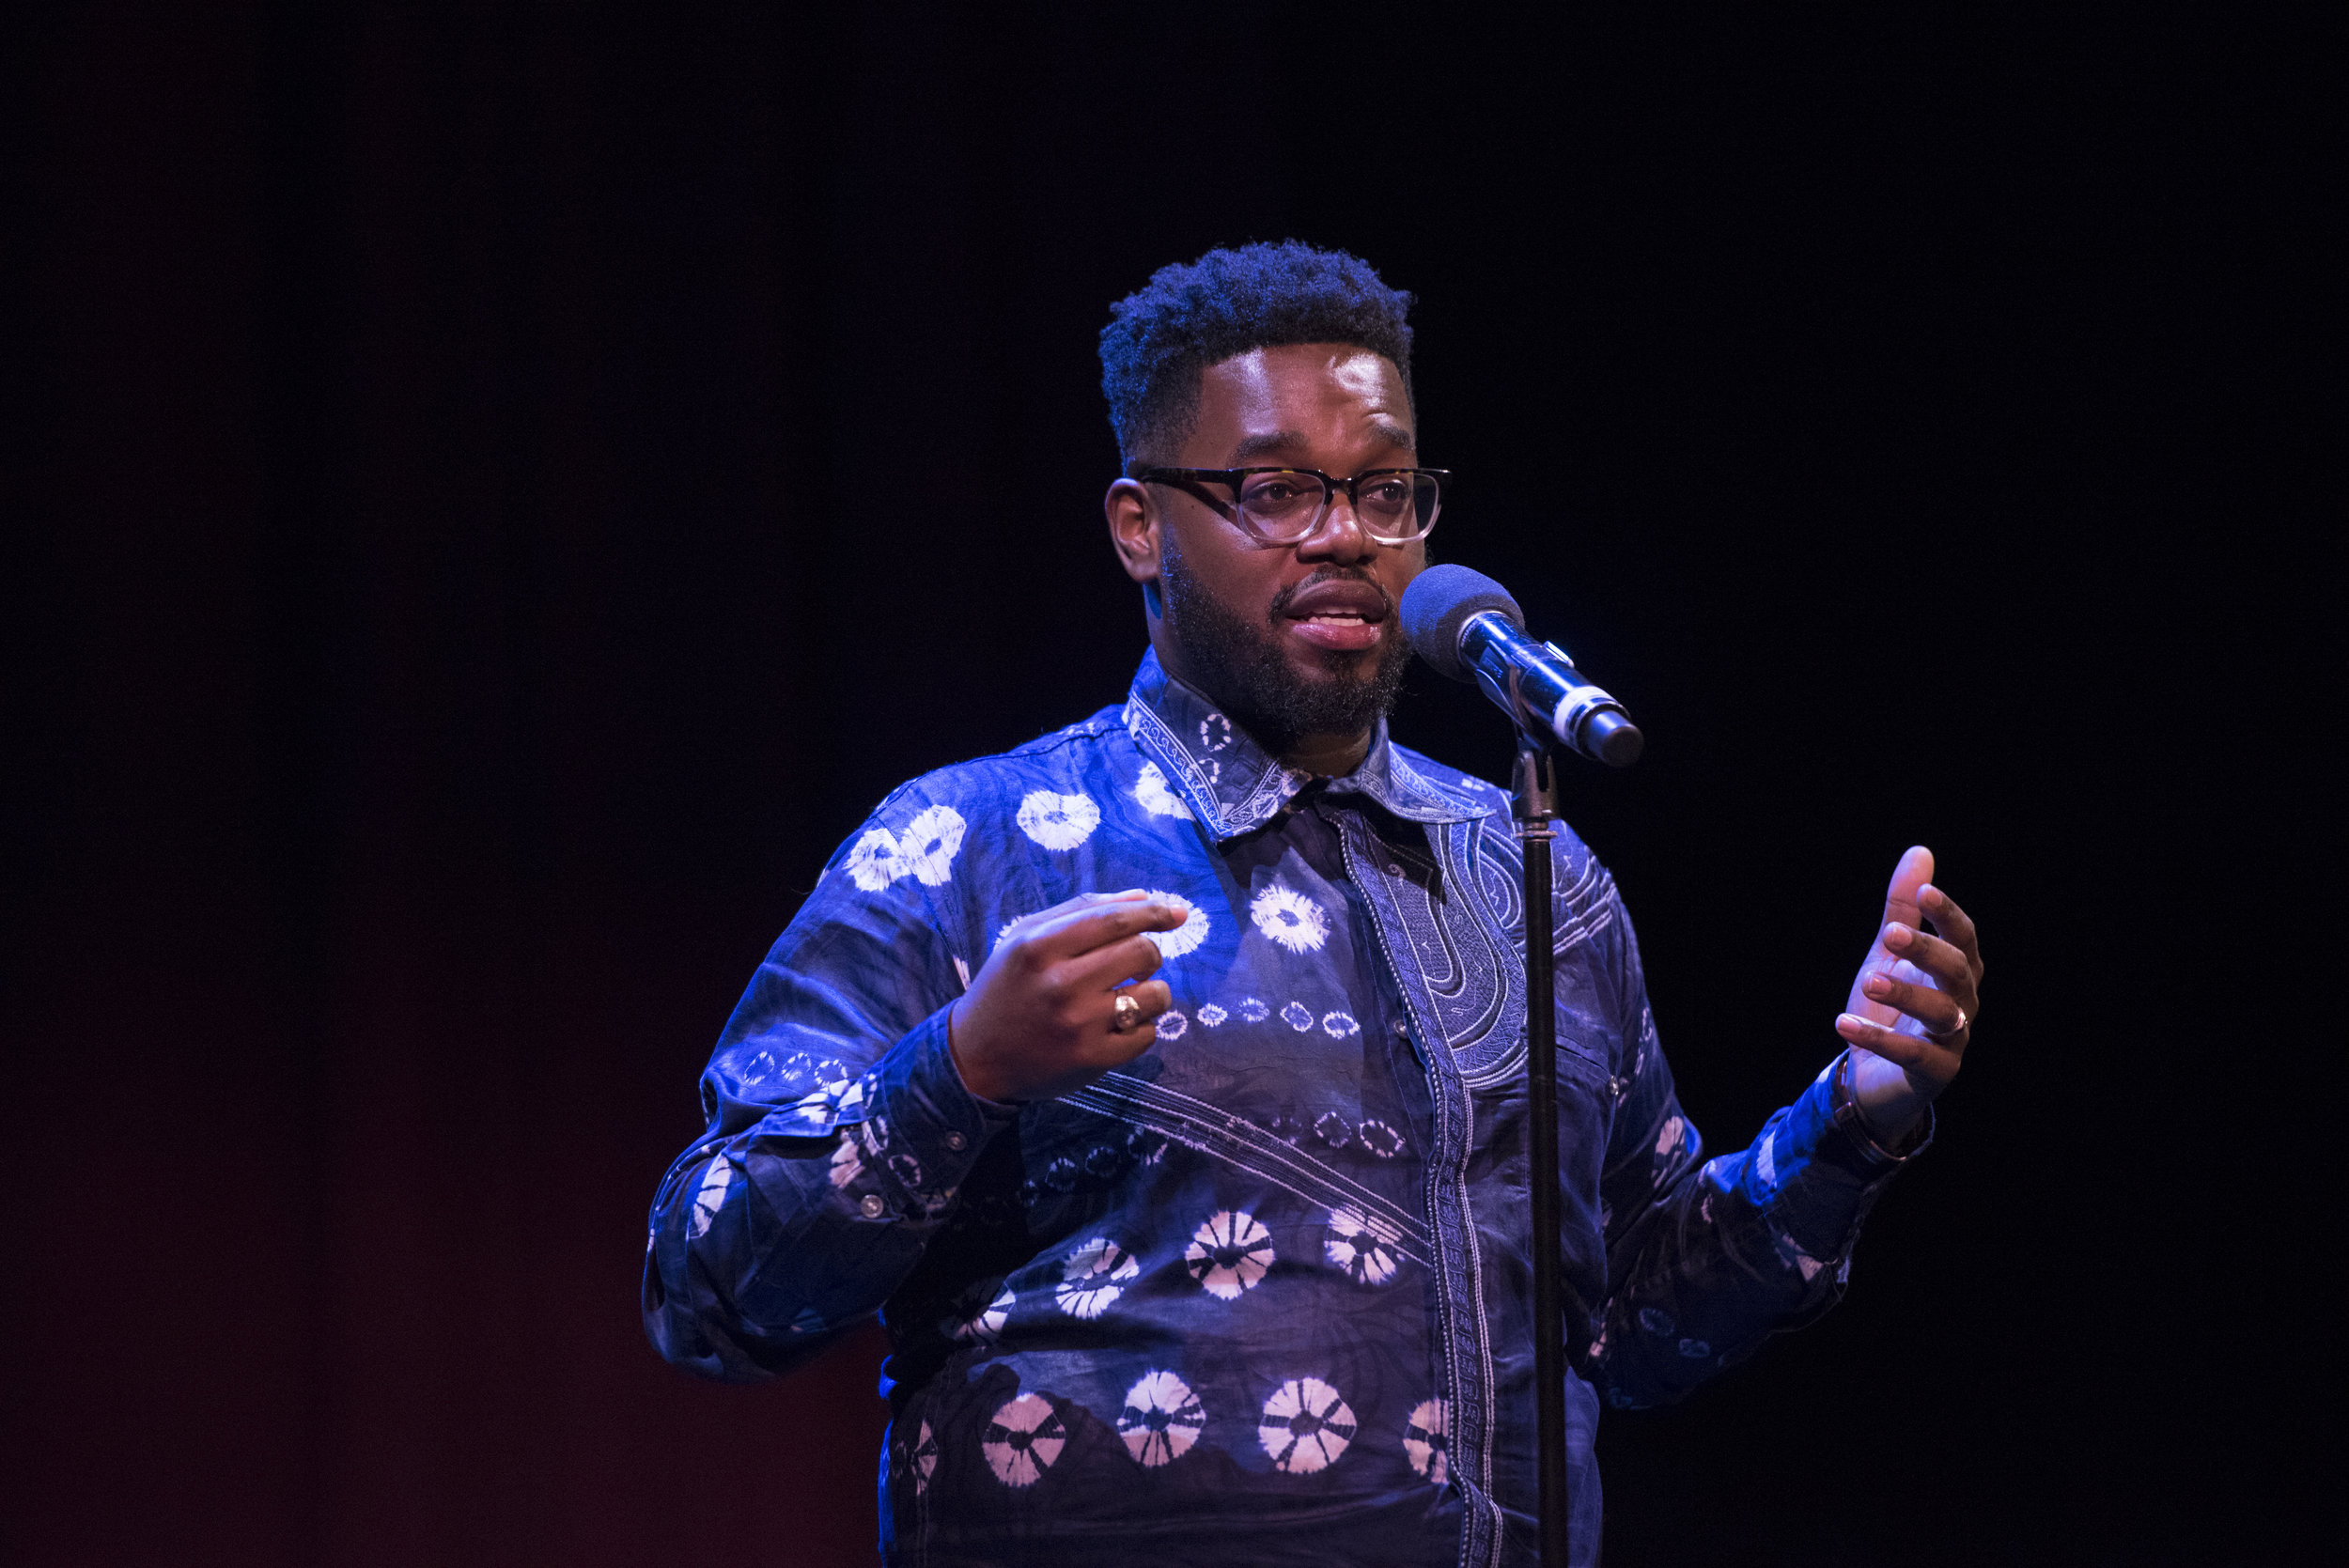 Ralph Bouquet shares his story at a Story Collider show at Oberon Theatre in Cambridge, MA in October, 2018. Photo by Kate Flock.